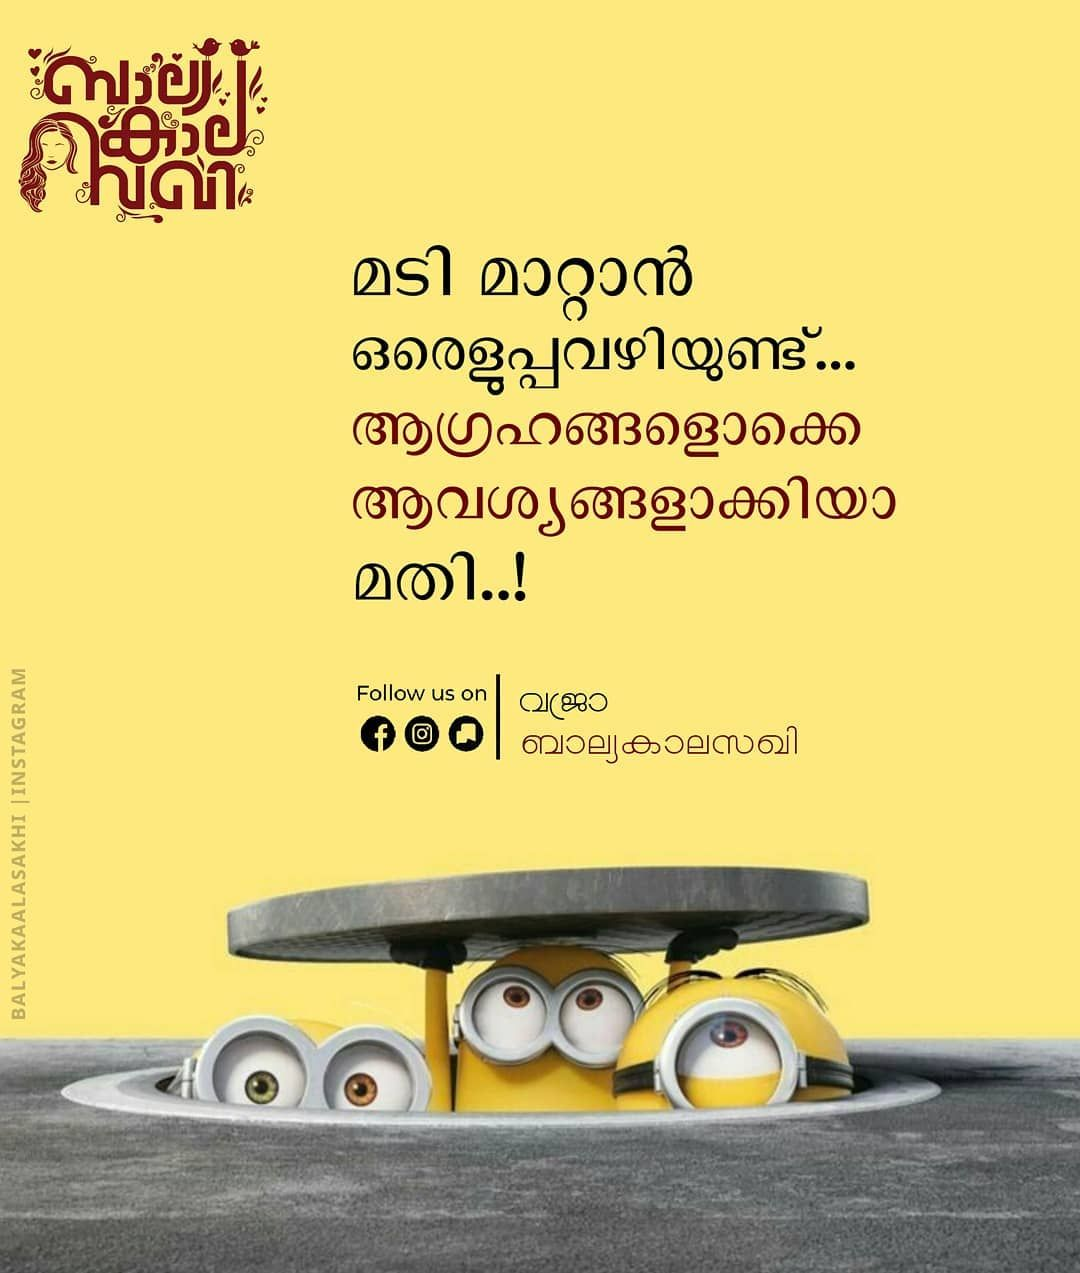 Pin By Adrijana Marcinkovoc On Malayalam Quotes Malayalam Quotes Friends Quotes Funny Typographic Quote